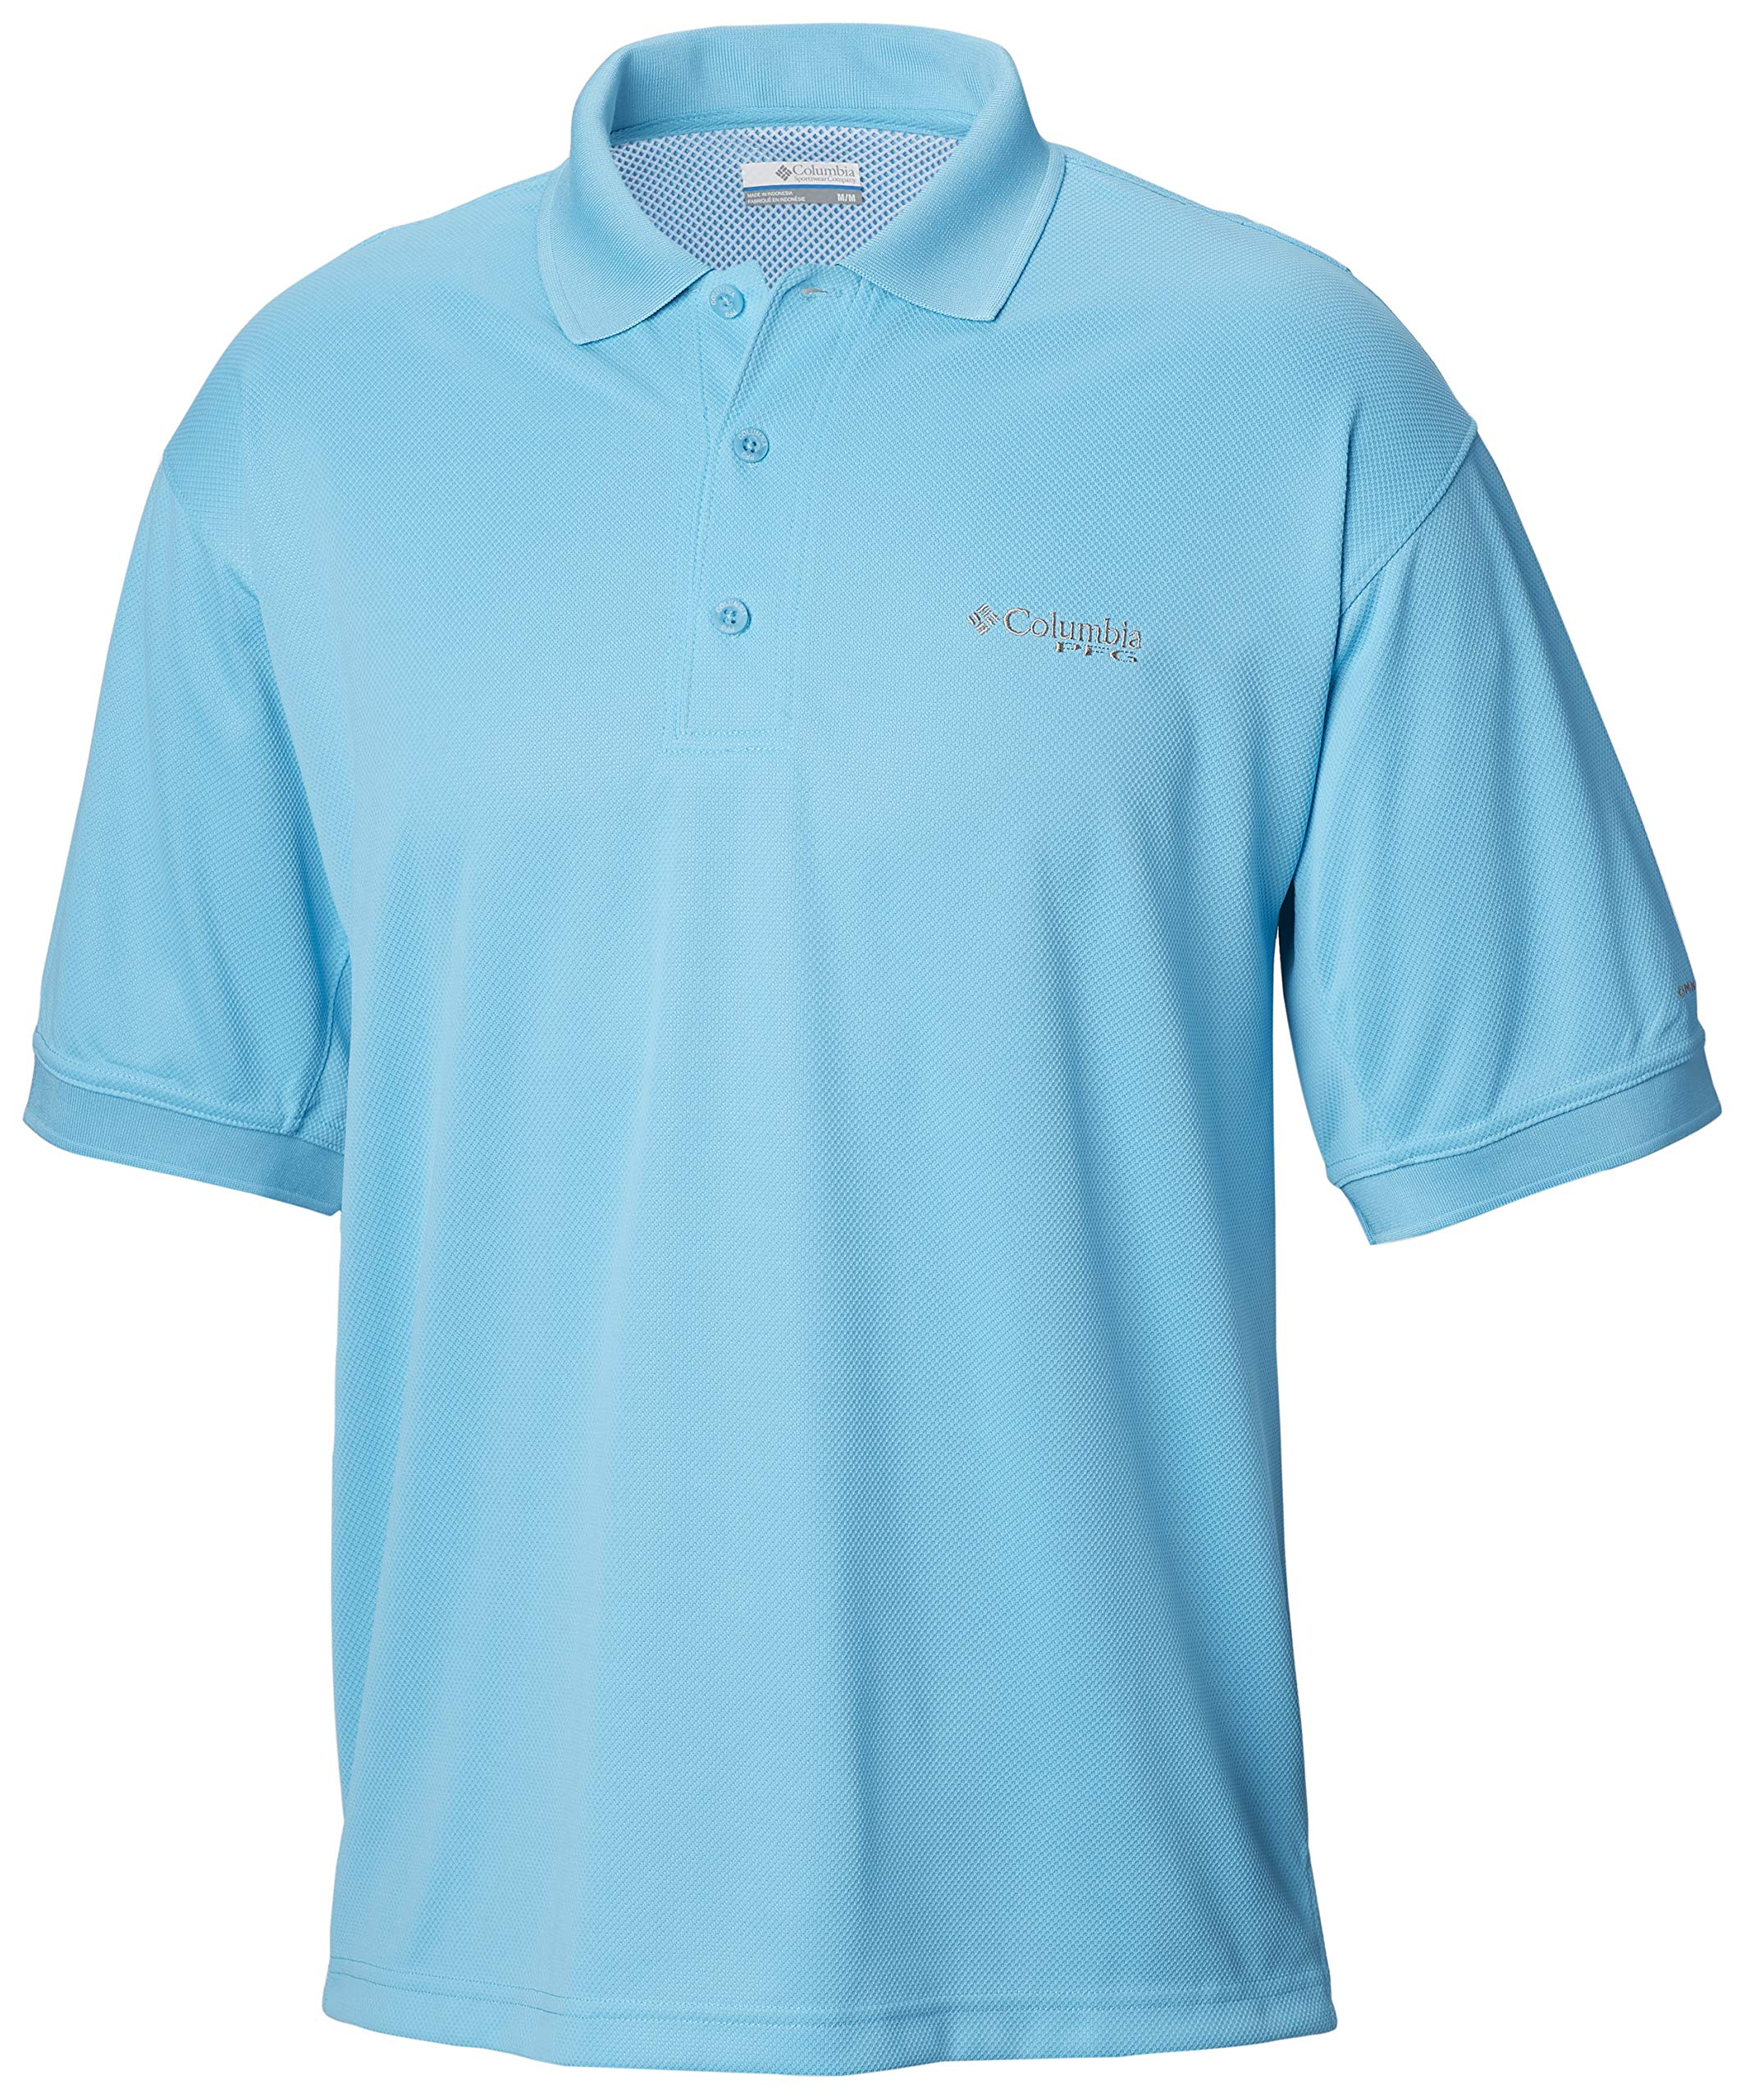 Columbia Men's PFG Perfect Cast Polo Shirt, Breathable, UV Protection , Atoll , Small